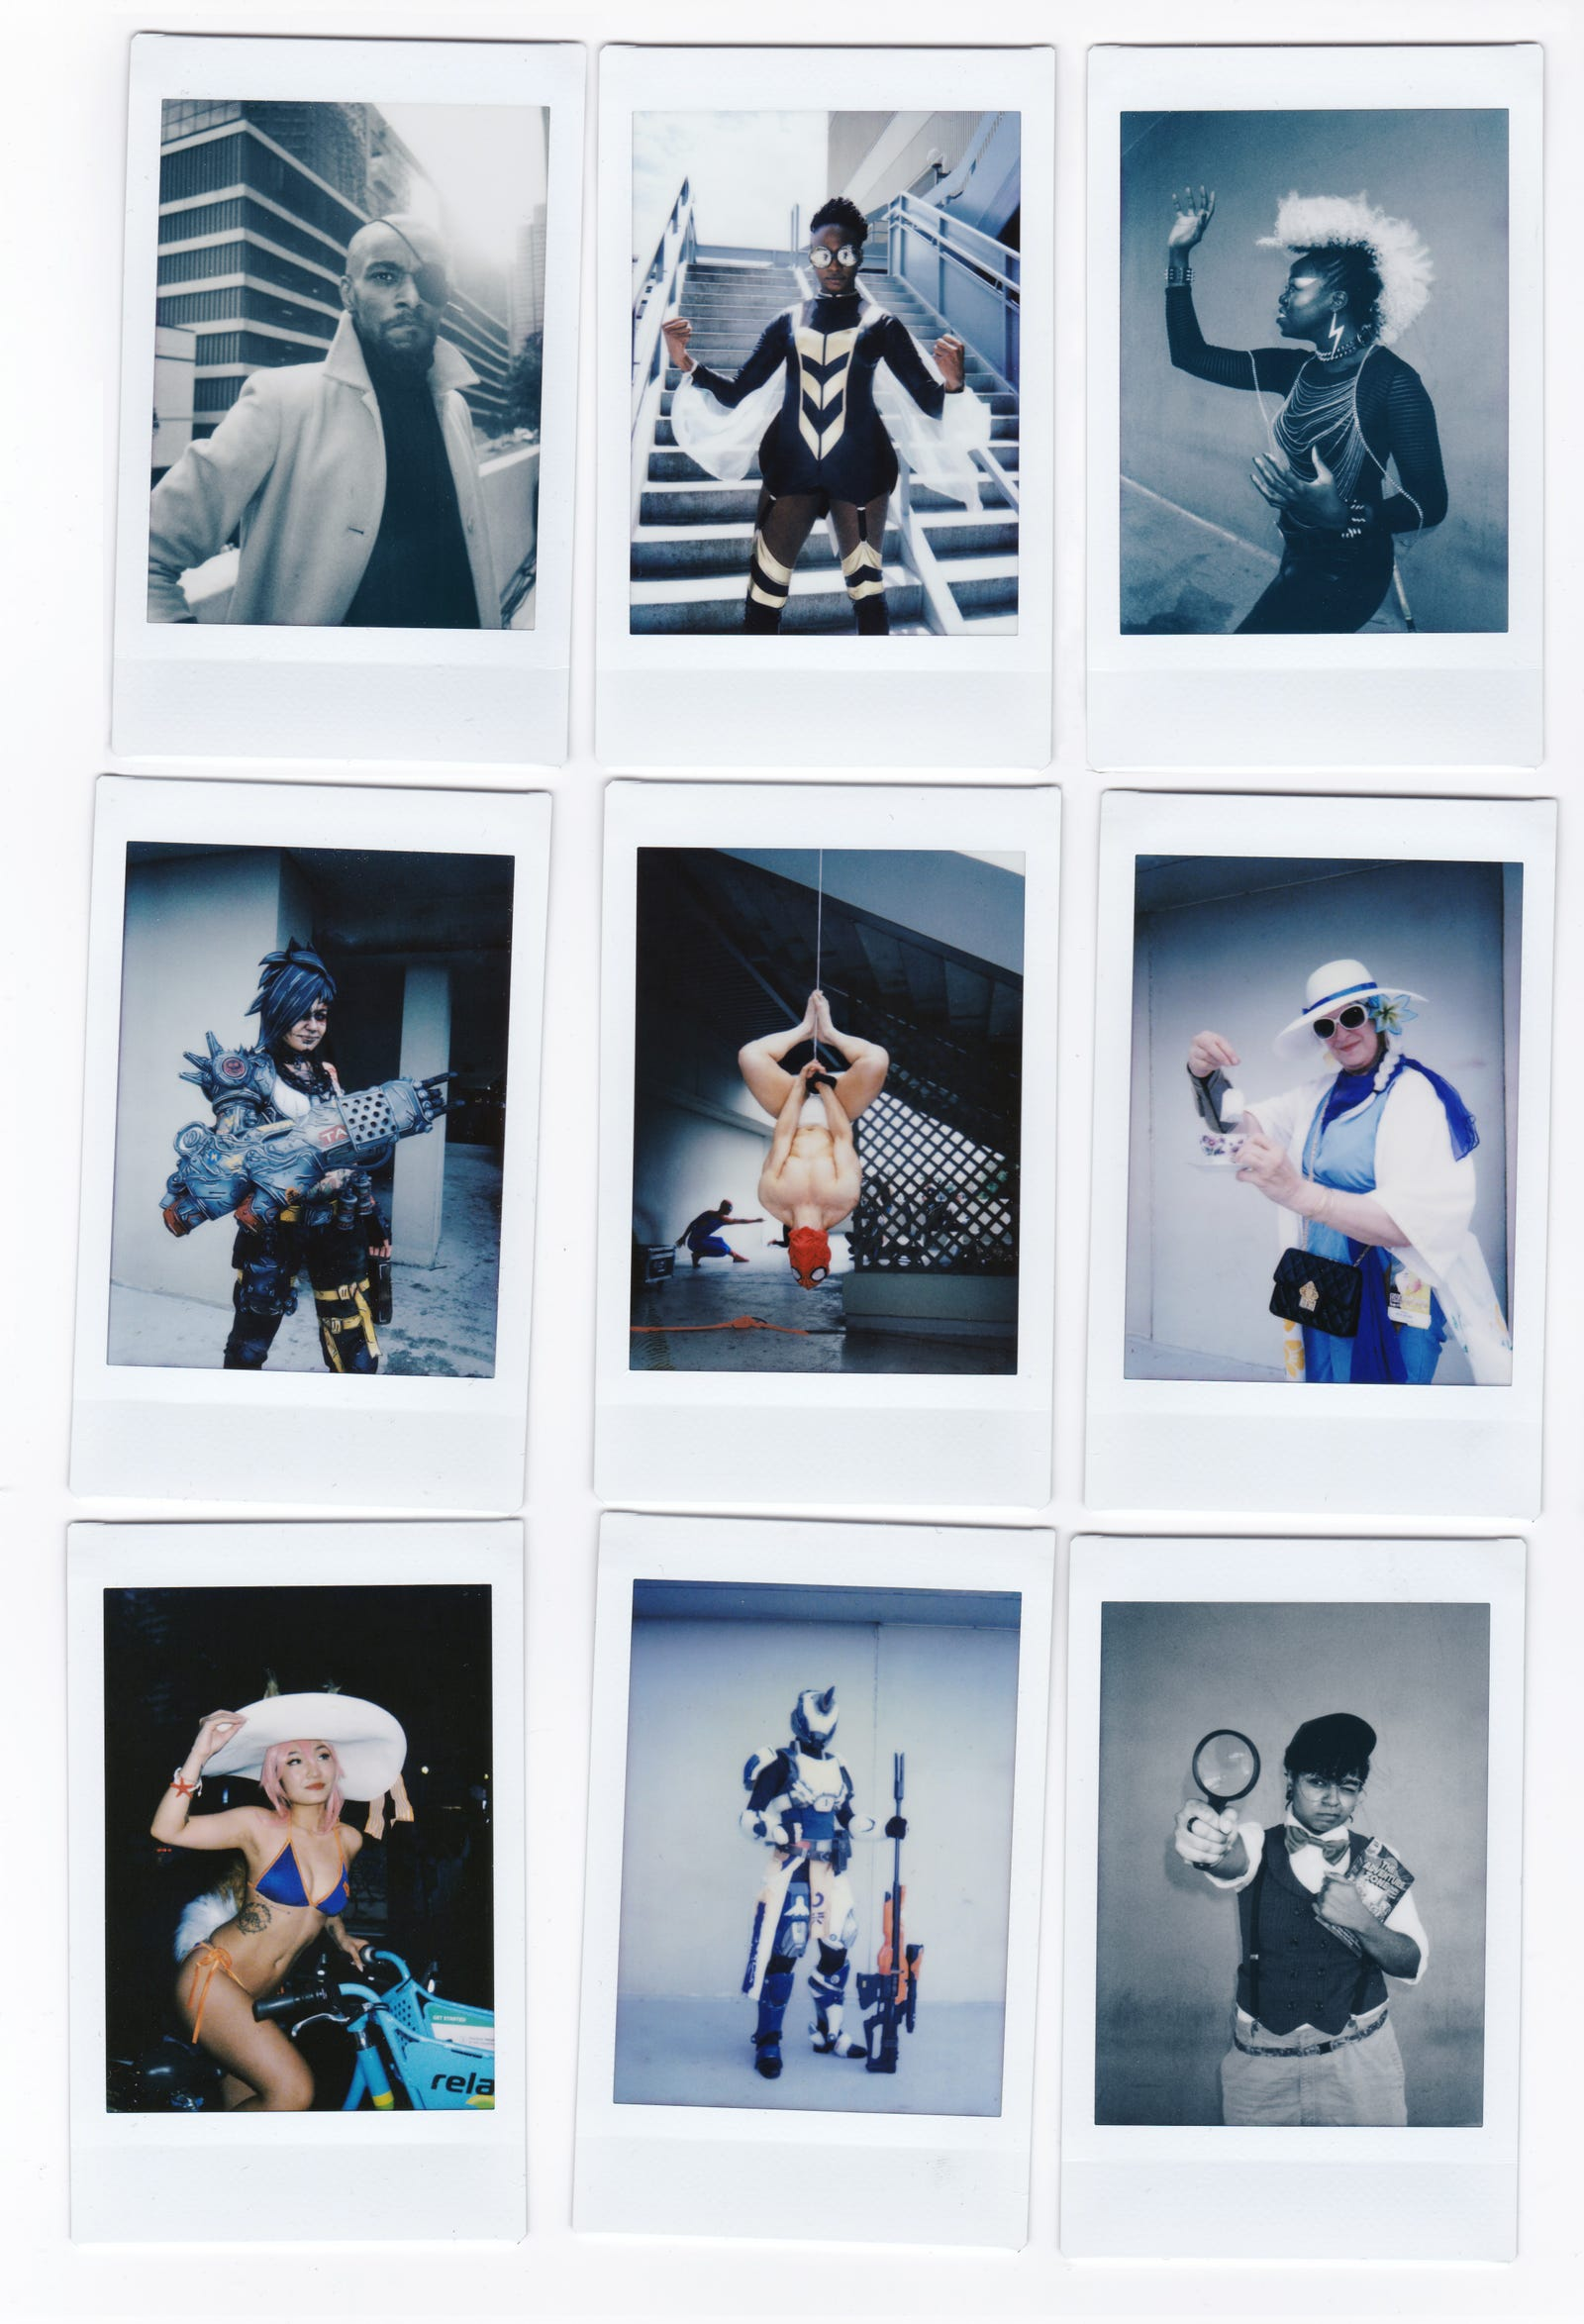 Cosplay Looks Totally Different Through The Lens Of An Instant Camera